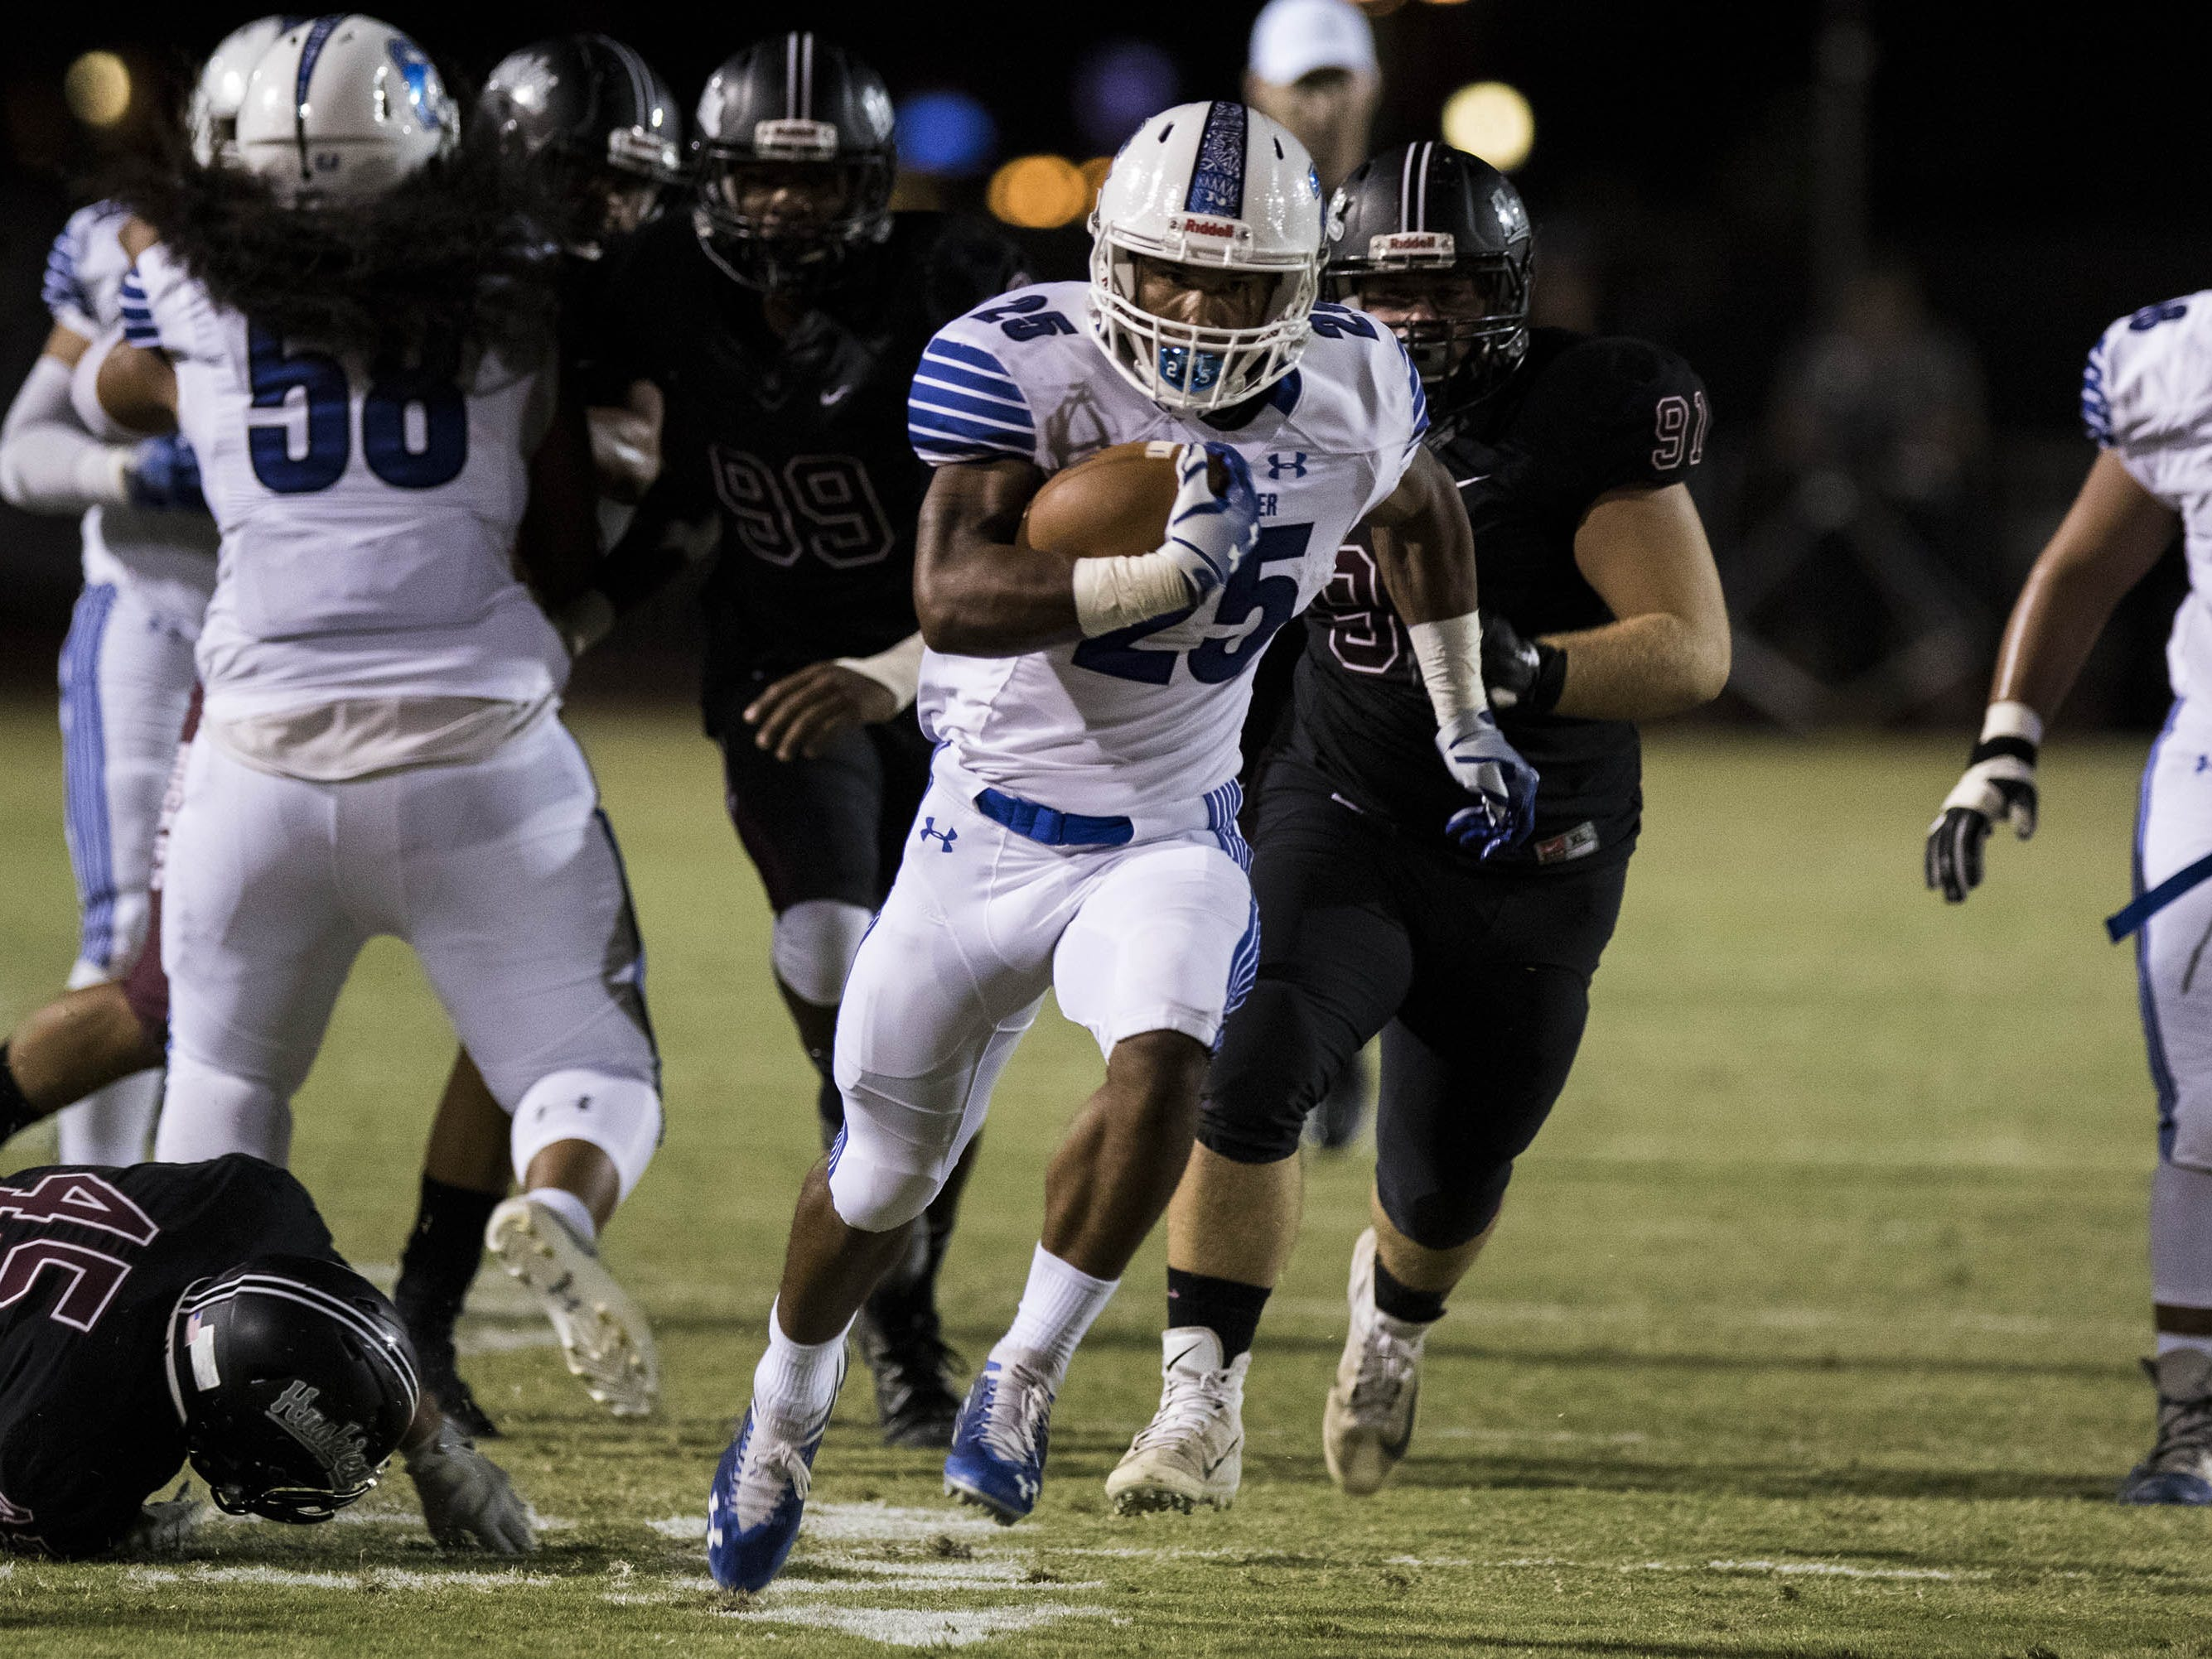 Chandler's Decarlos Brooks finds running room against Hamilton's during their game in Chandler, Friday, Oct. 26, 2018. #azhsfb